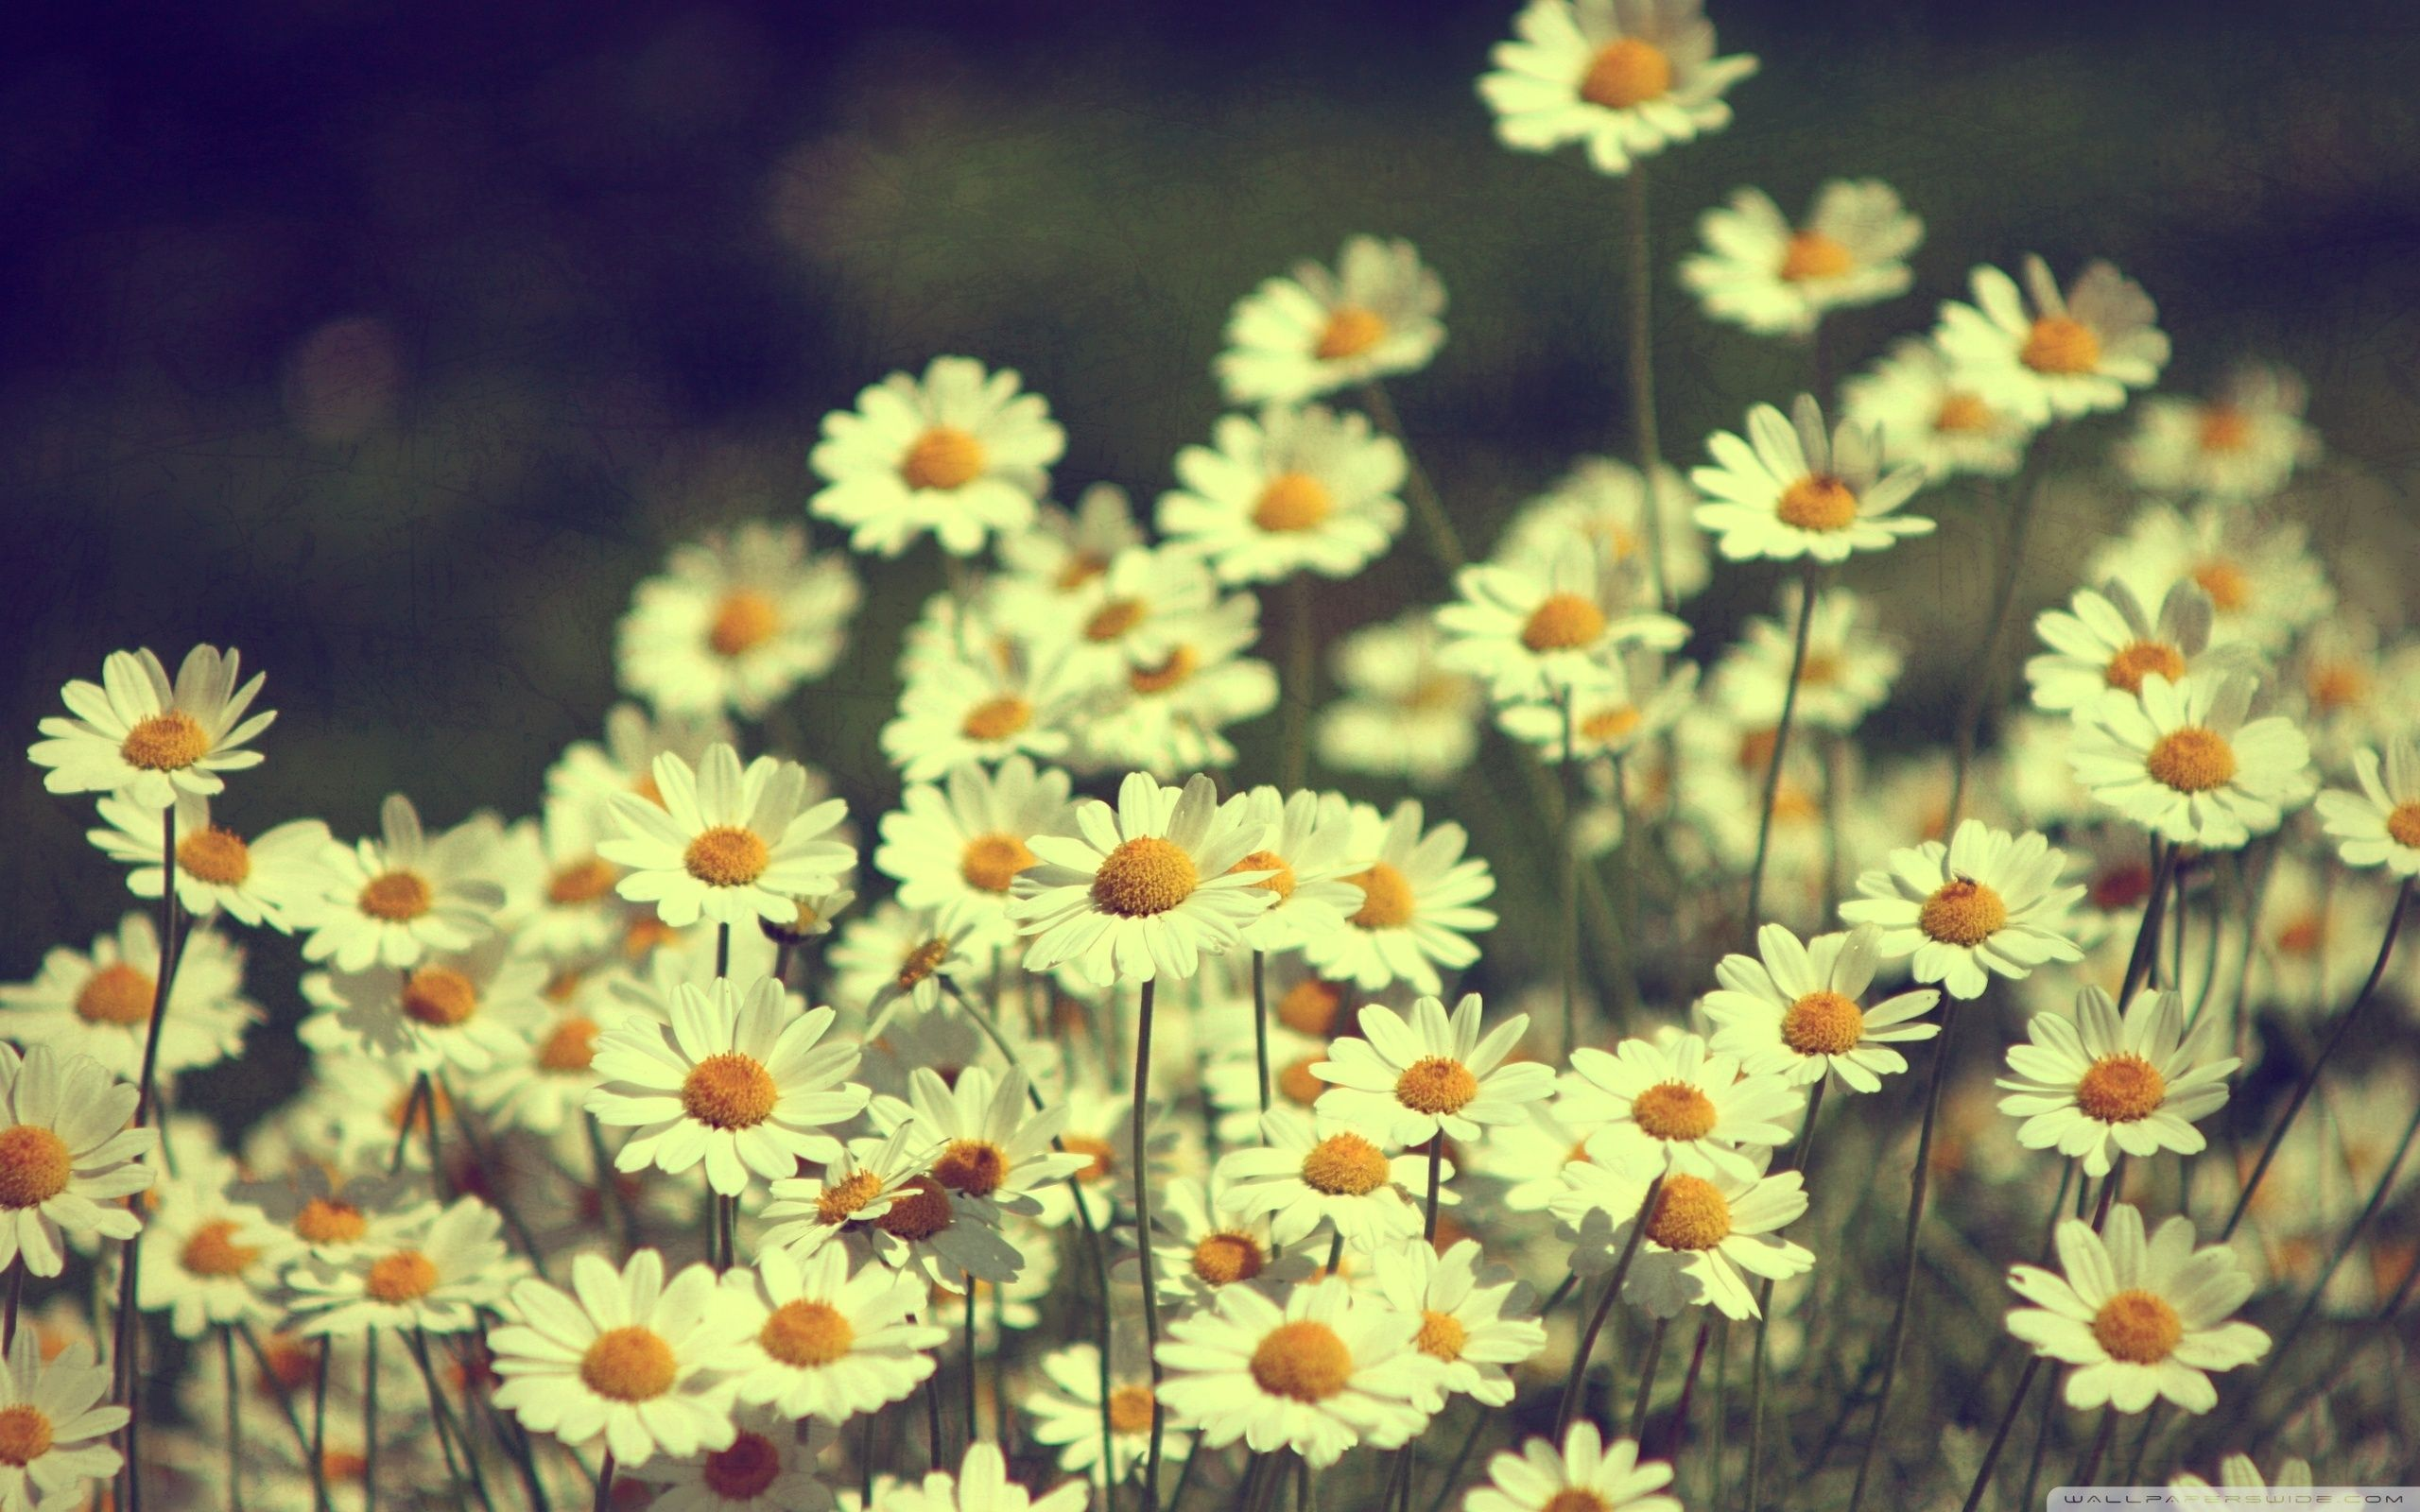 Vintage Daisies Photography HD Desktop Wallpaper Background